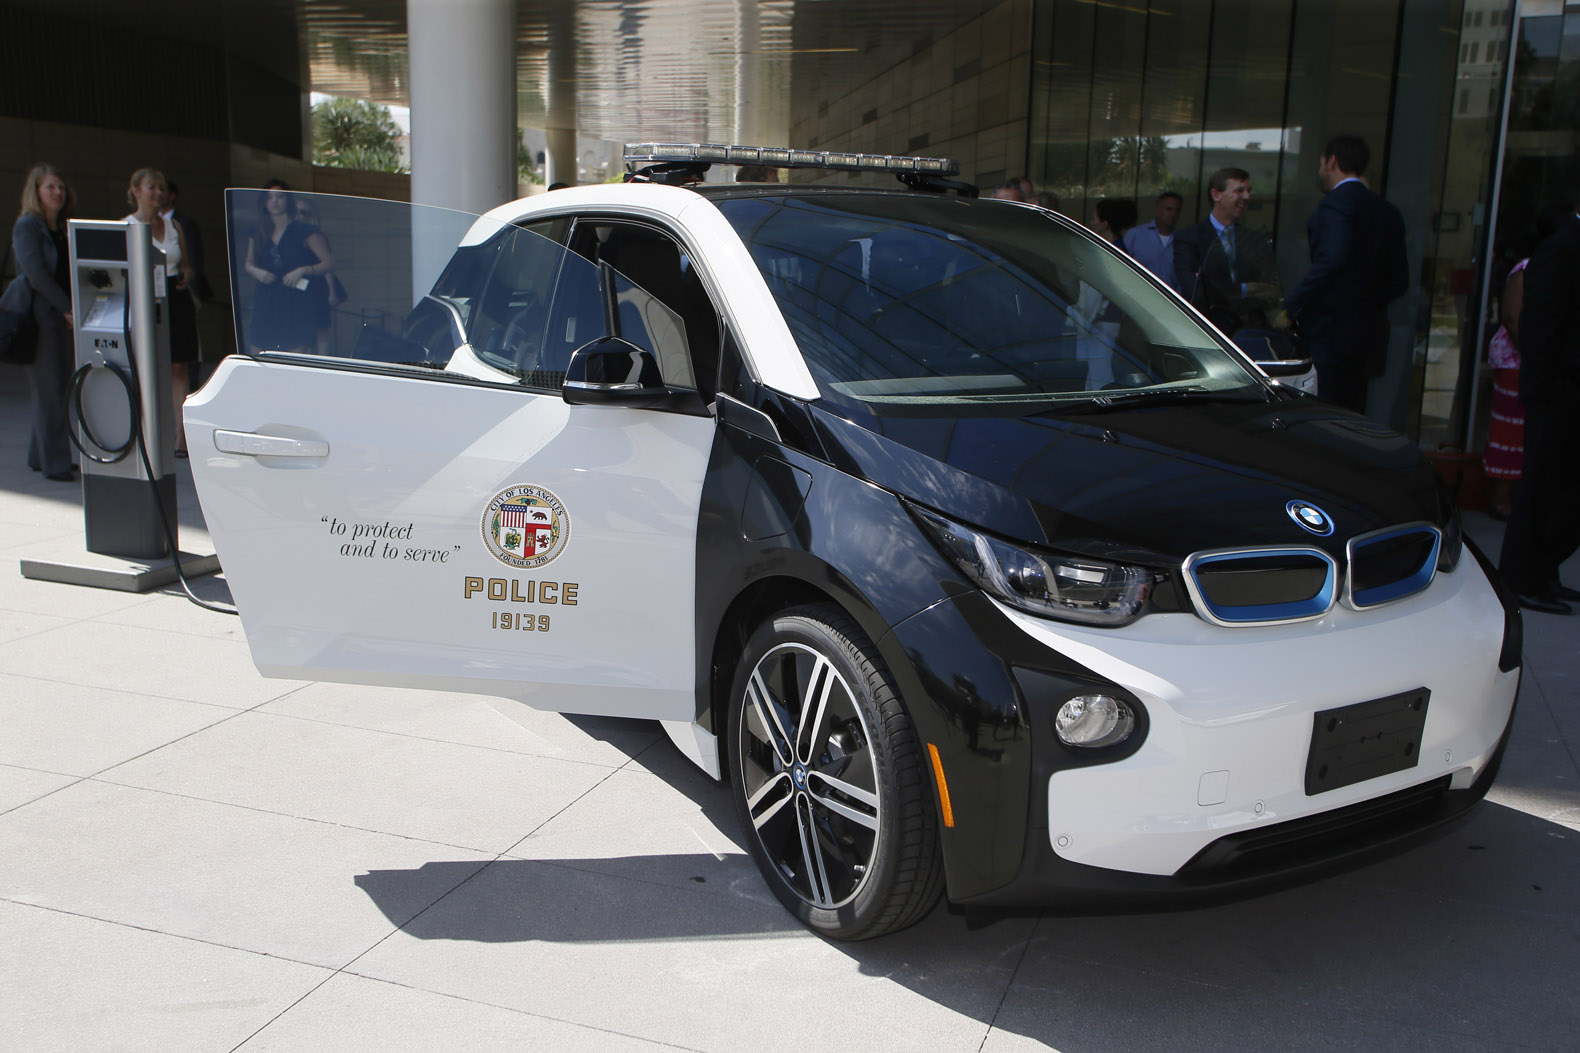 Los Angeles will soon boast the largest electric vehicle fleet in the US